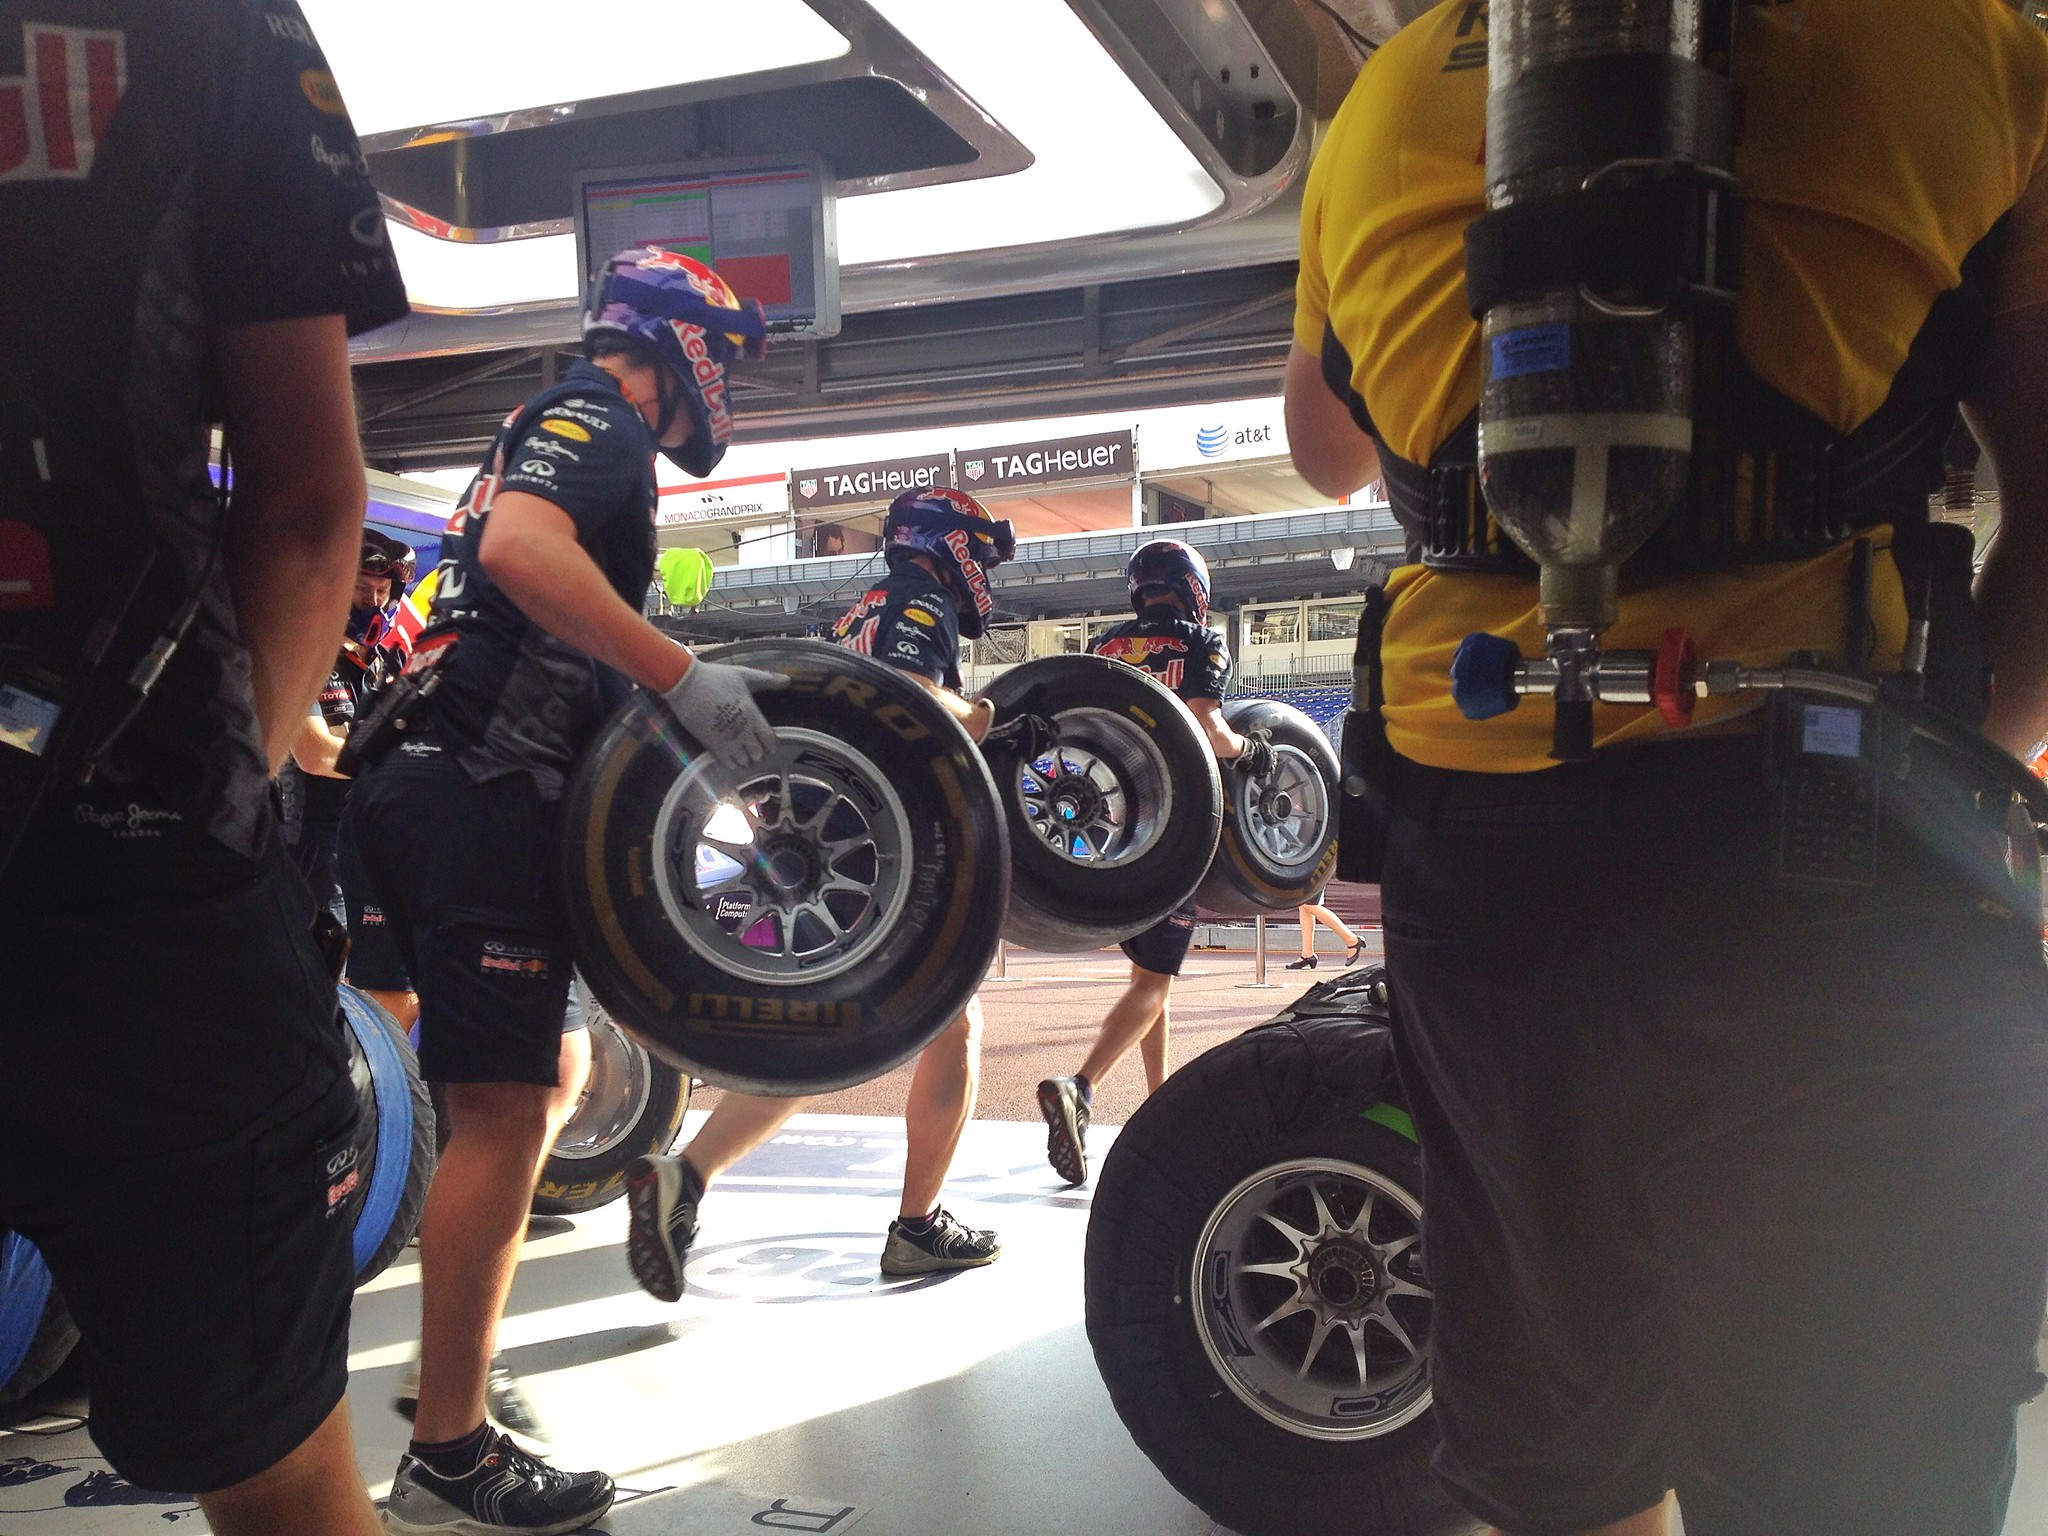 In the garage during an F1 pitstop